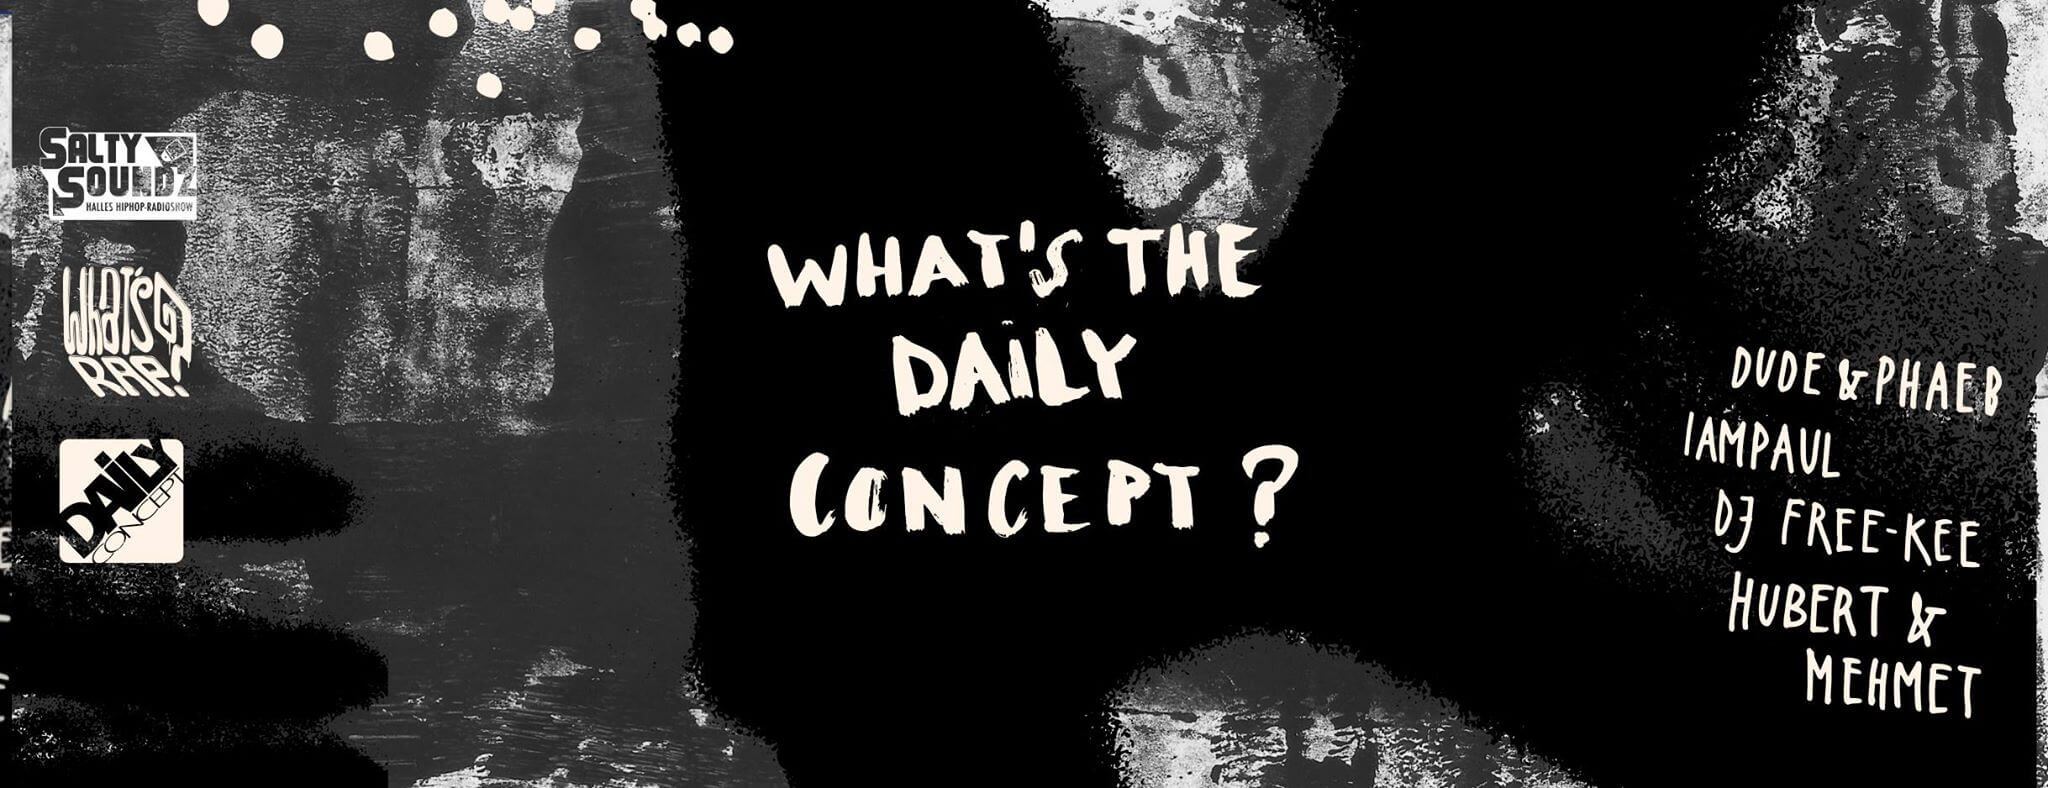 whatsthedailyconcept